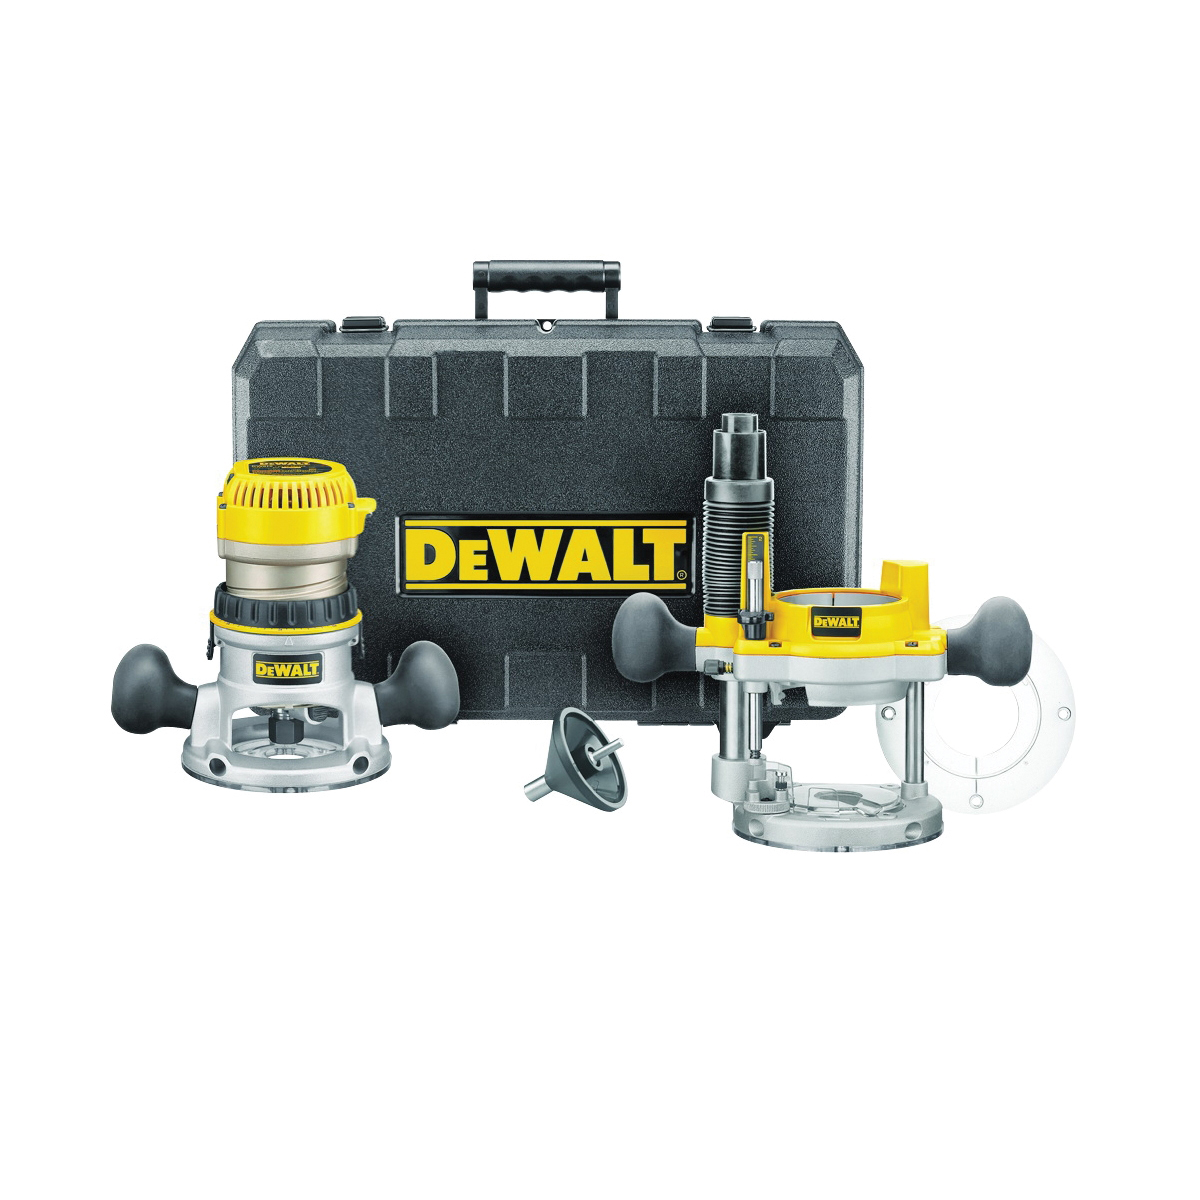 Picture of DeWALT DW618PK Fixed Base Router Combo Kit, 120 V, 12 A, 8000 to 24,000 rpm No Load